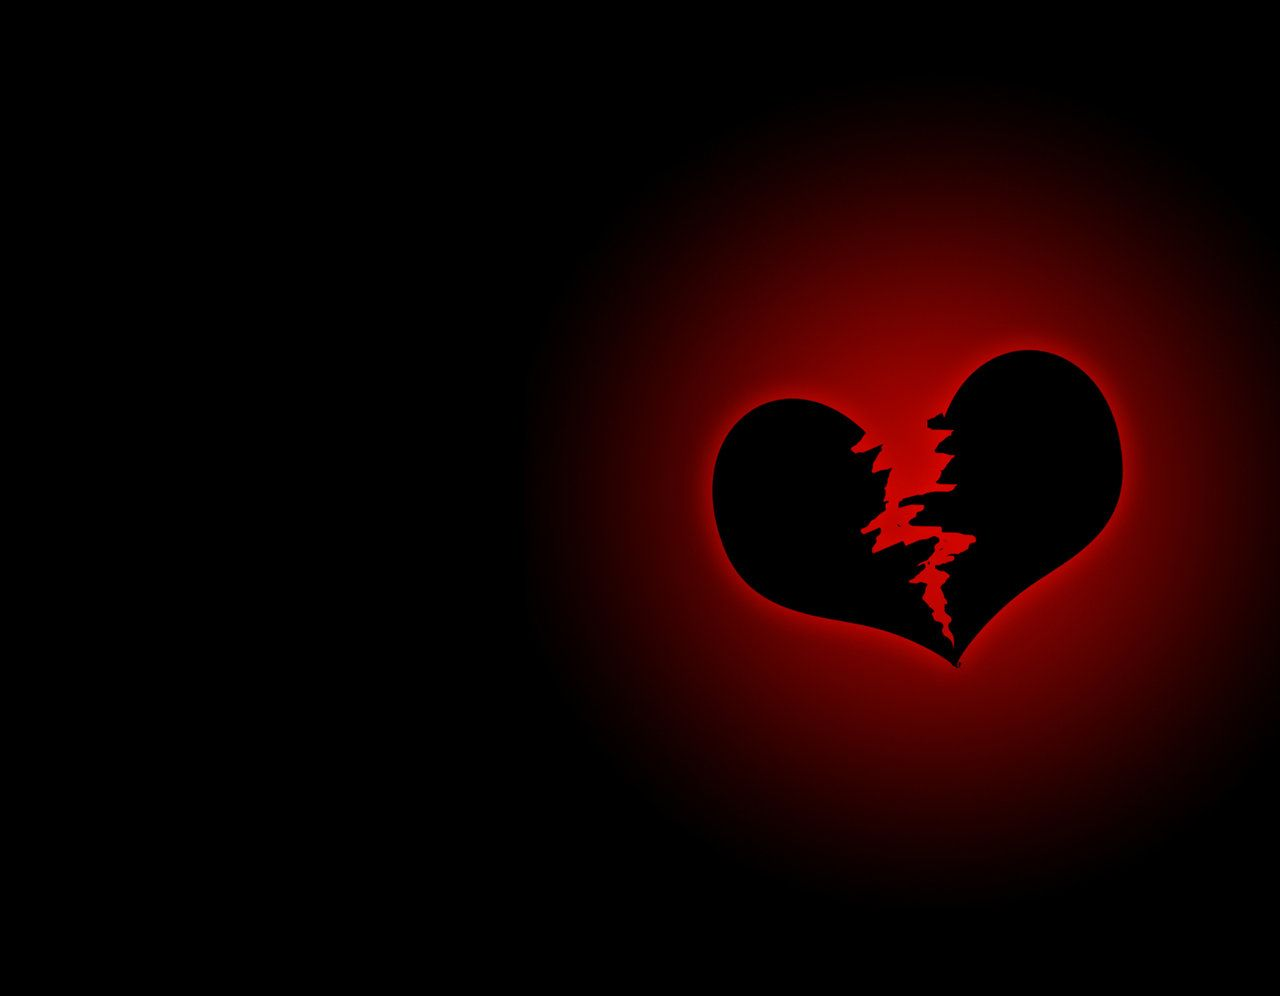 Broken hearts wallpaper 97985 at Love Wallpapers 1080p 1280x996